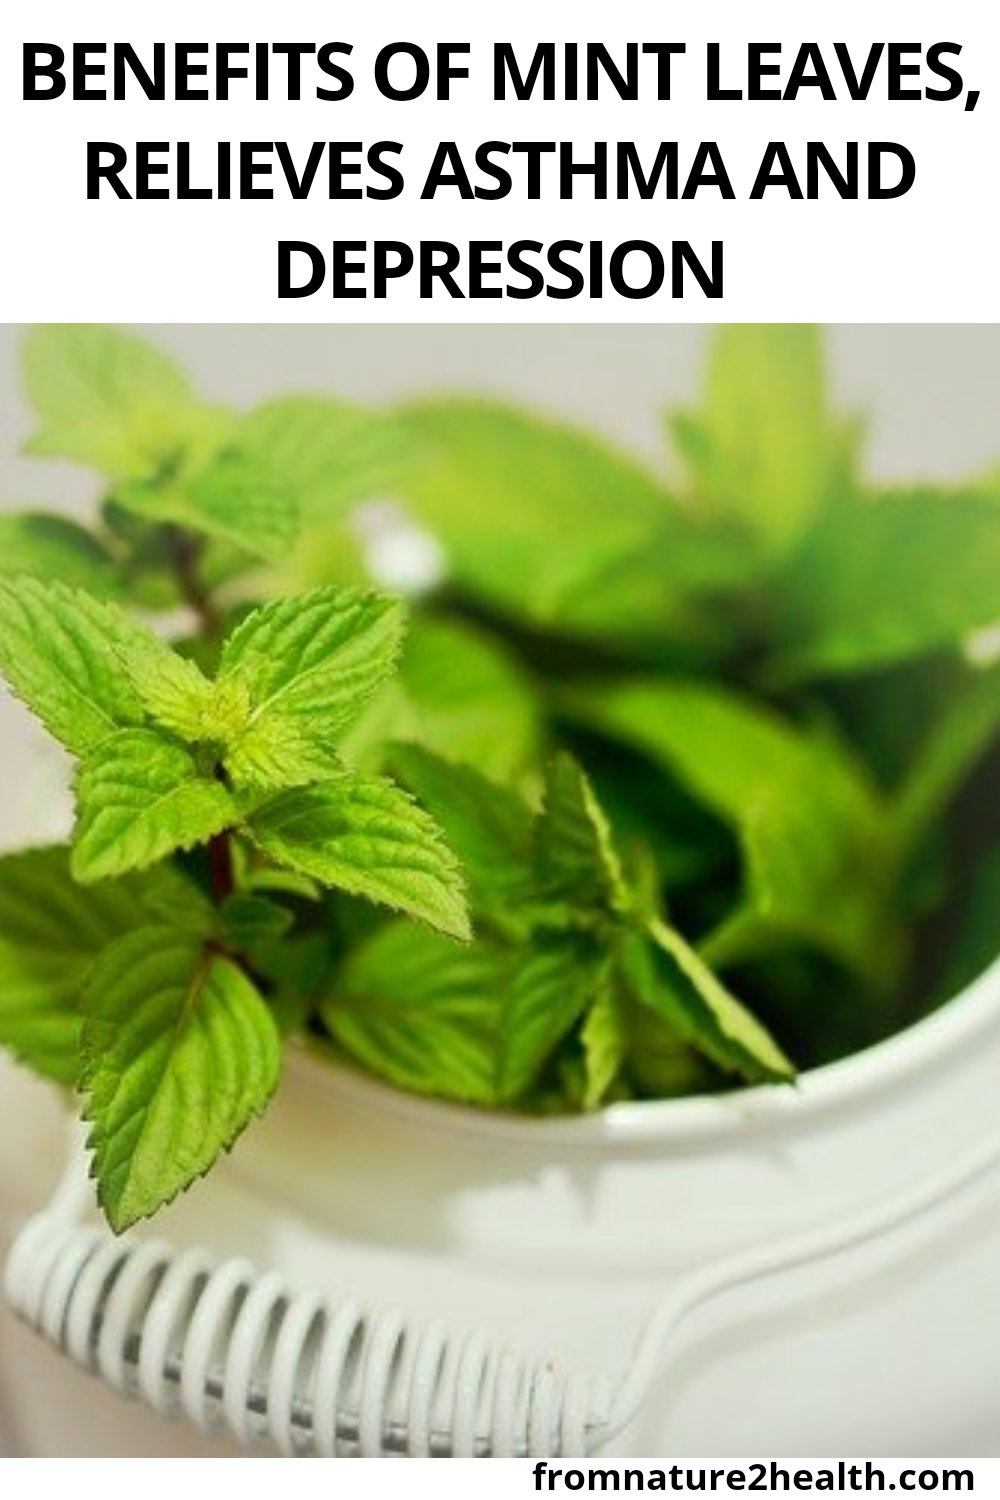 Benefits of Mint Leaves, Relieves Asthma and Depression